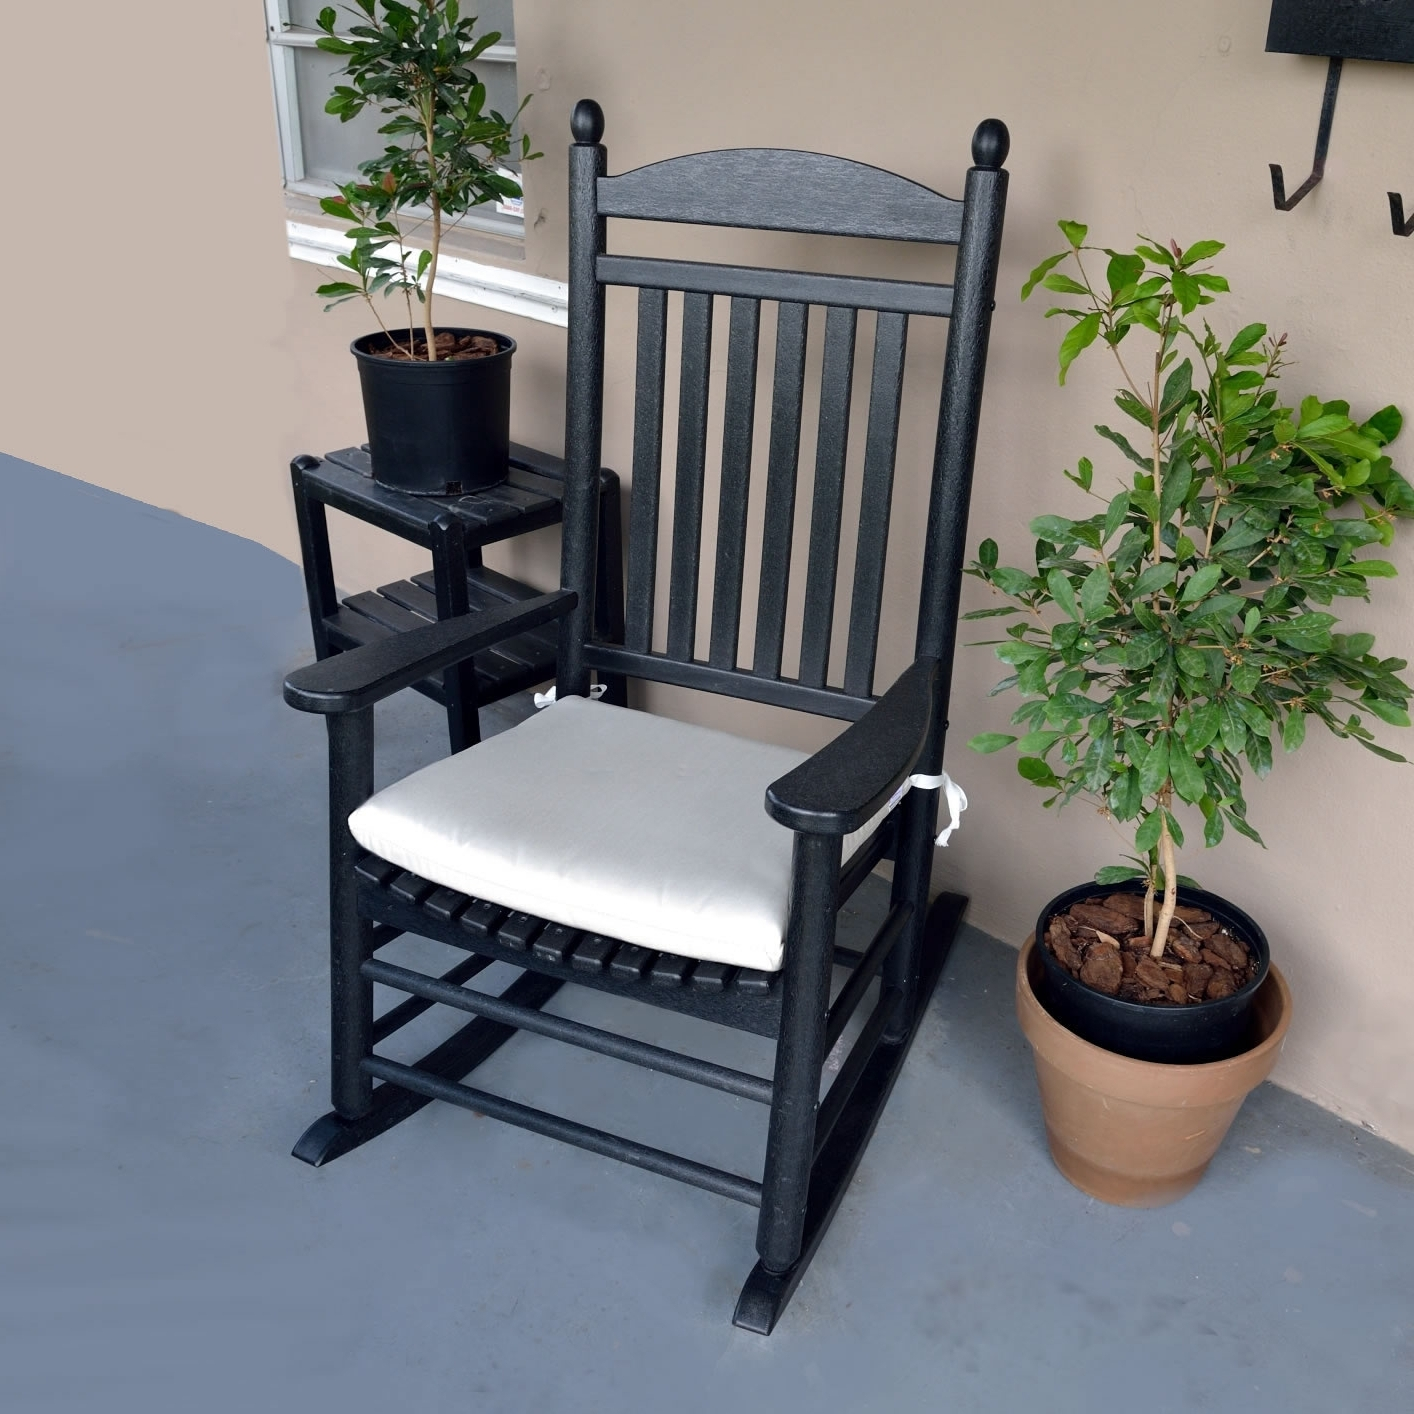 Polywood Rocking Chair Seat Cushions – Outdoor Cushions – Accessories Pertaining To Popular Rocking Chair Cushions For Outdoor (View 2 of 15)